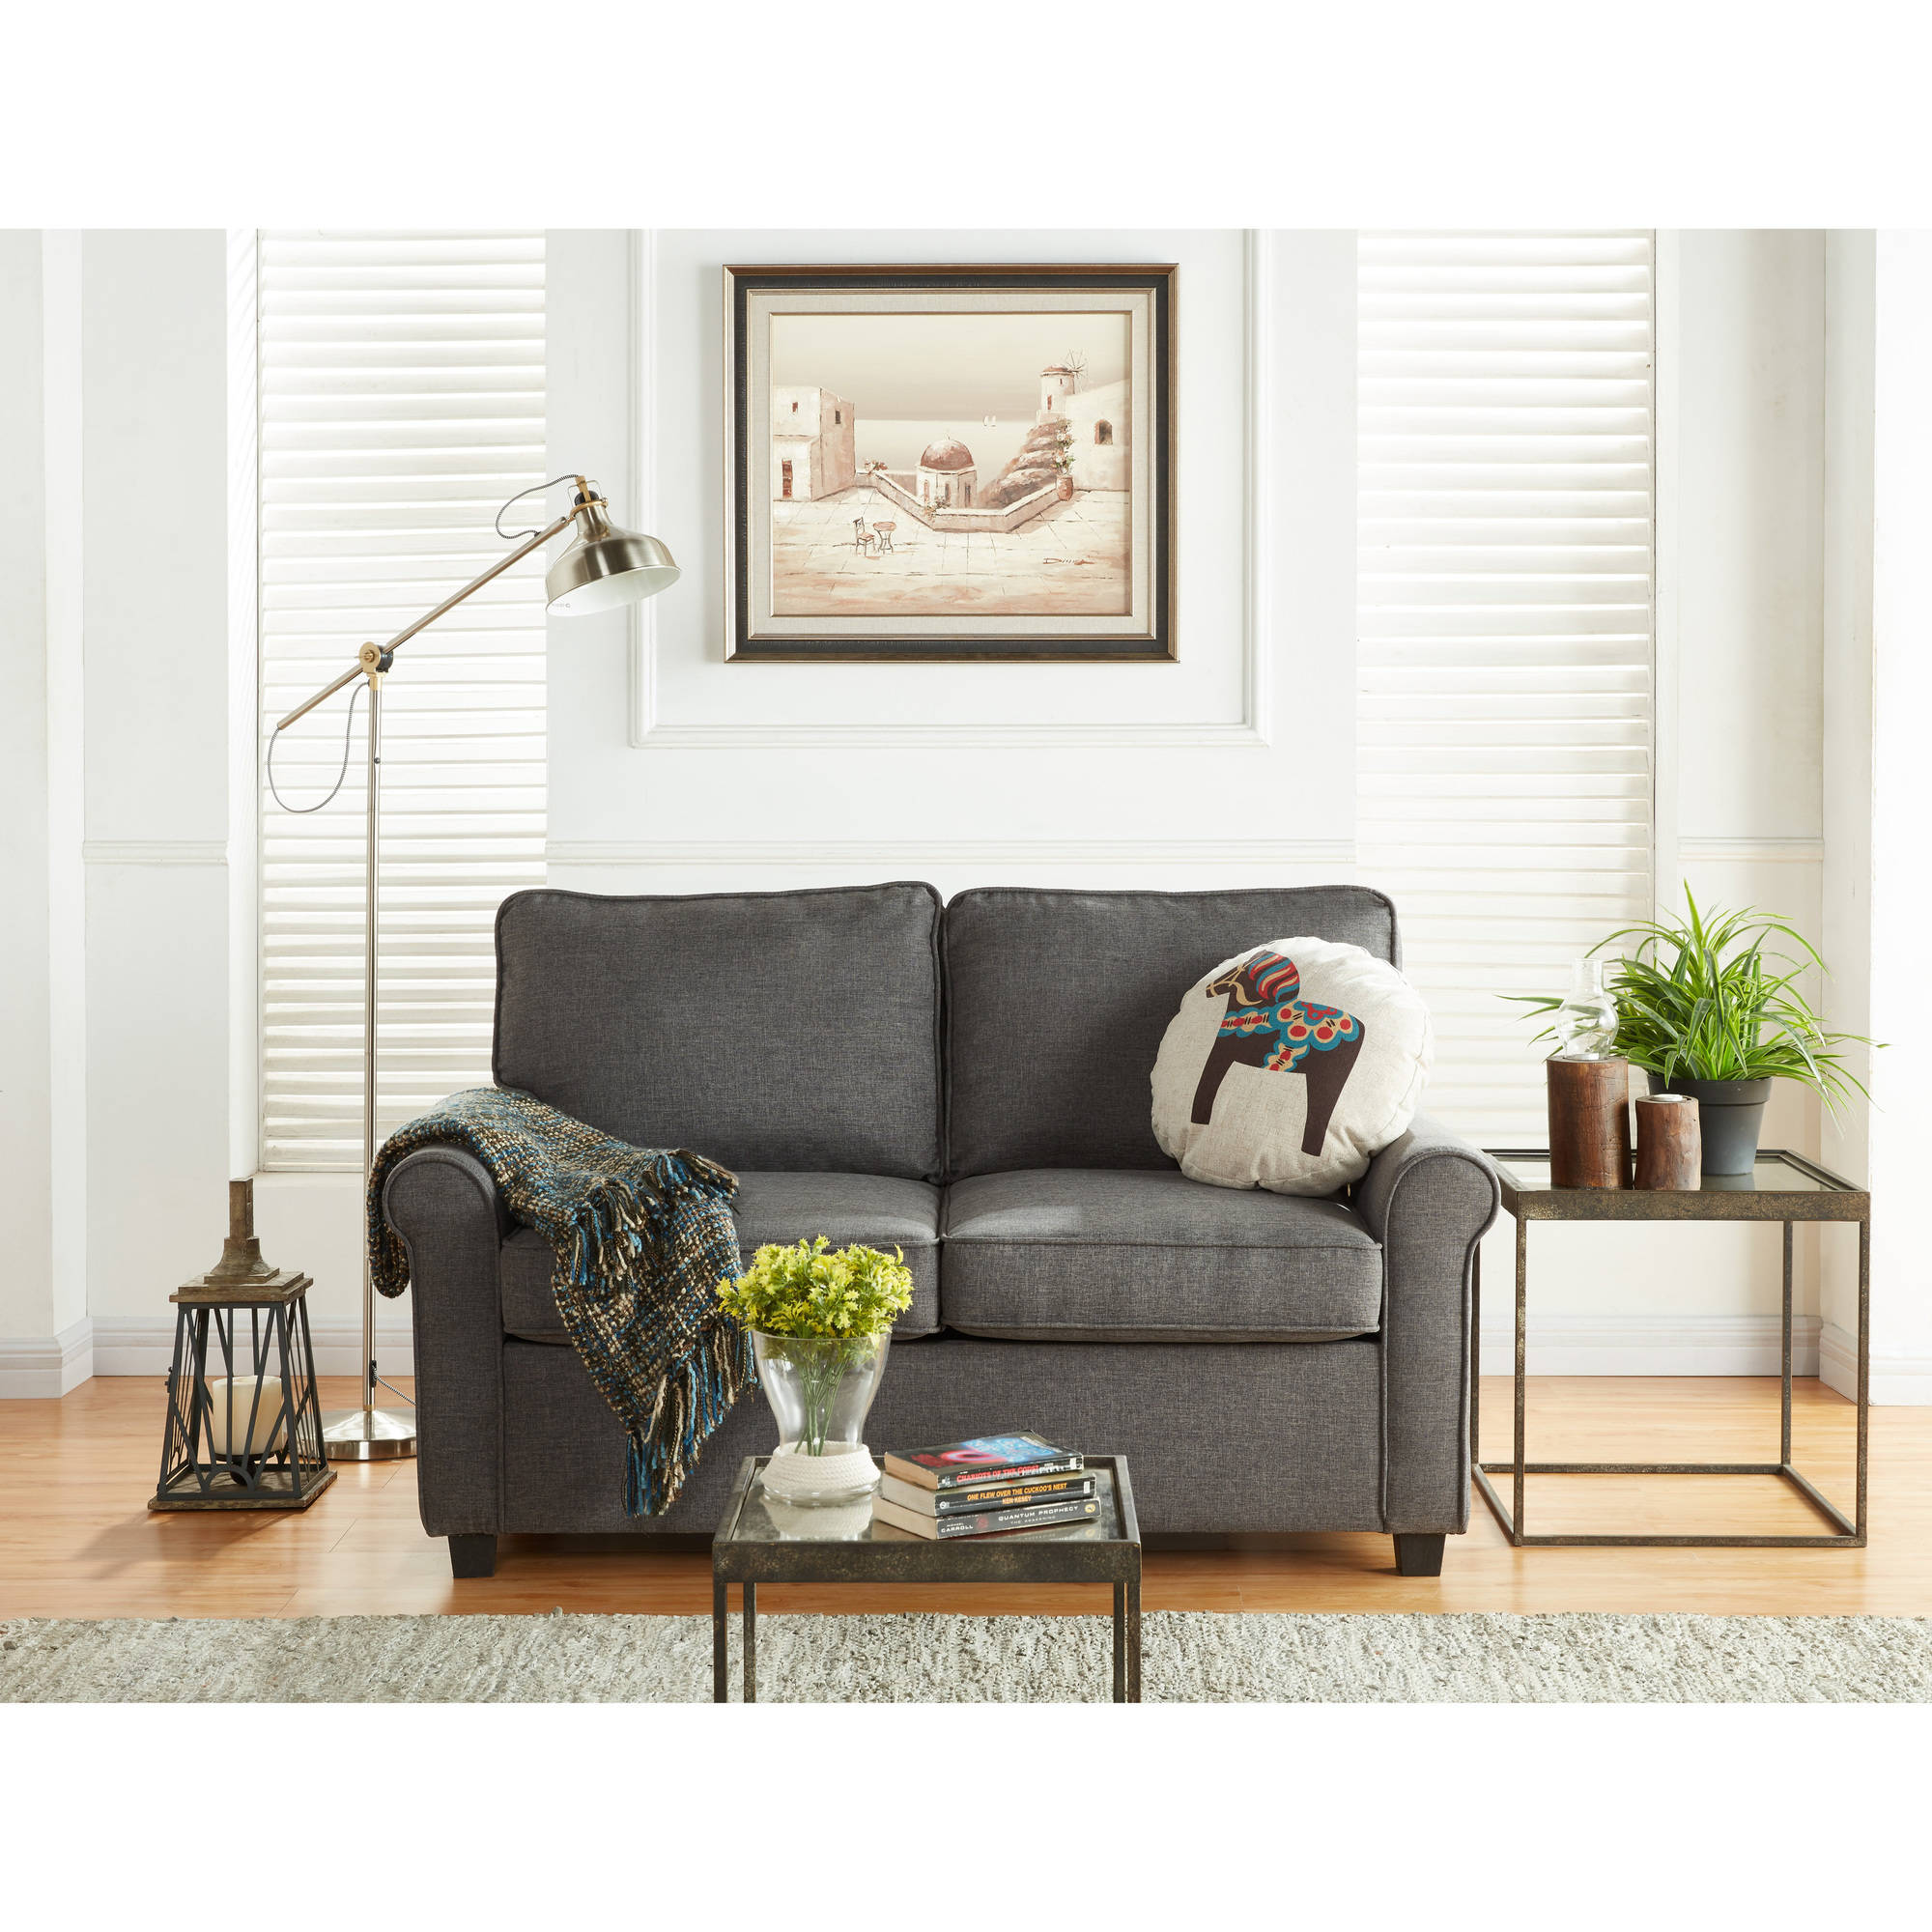 Mainstays Loveseat Sleeper with Memory Foam Mattress Grey